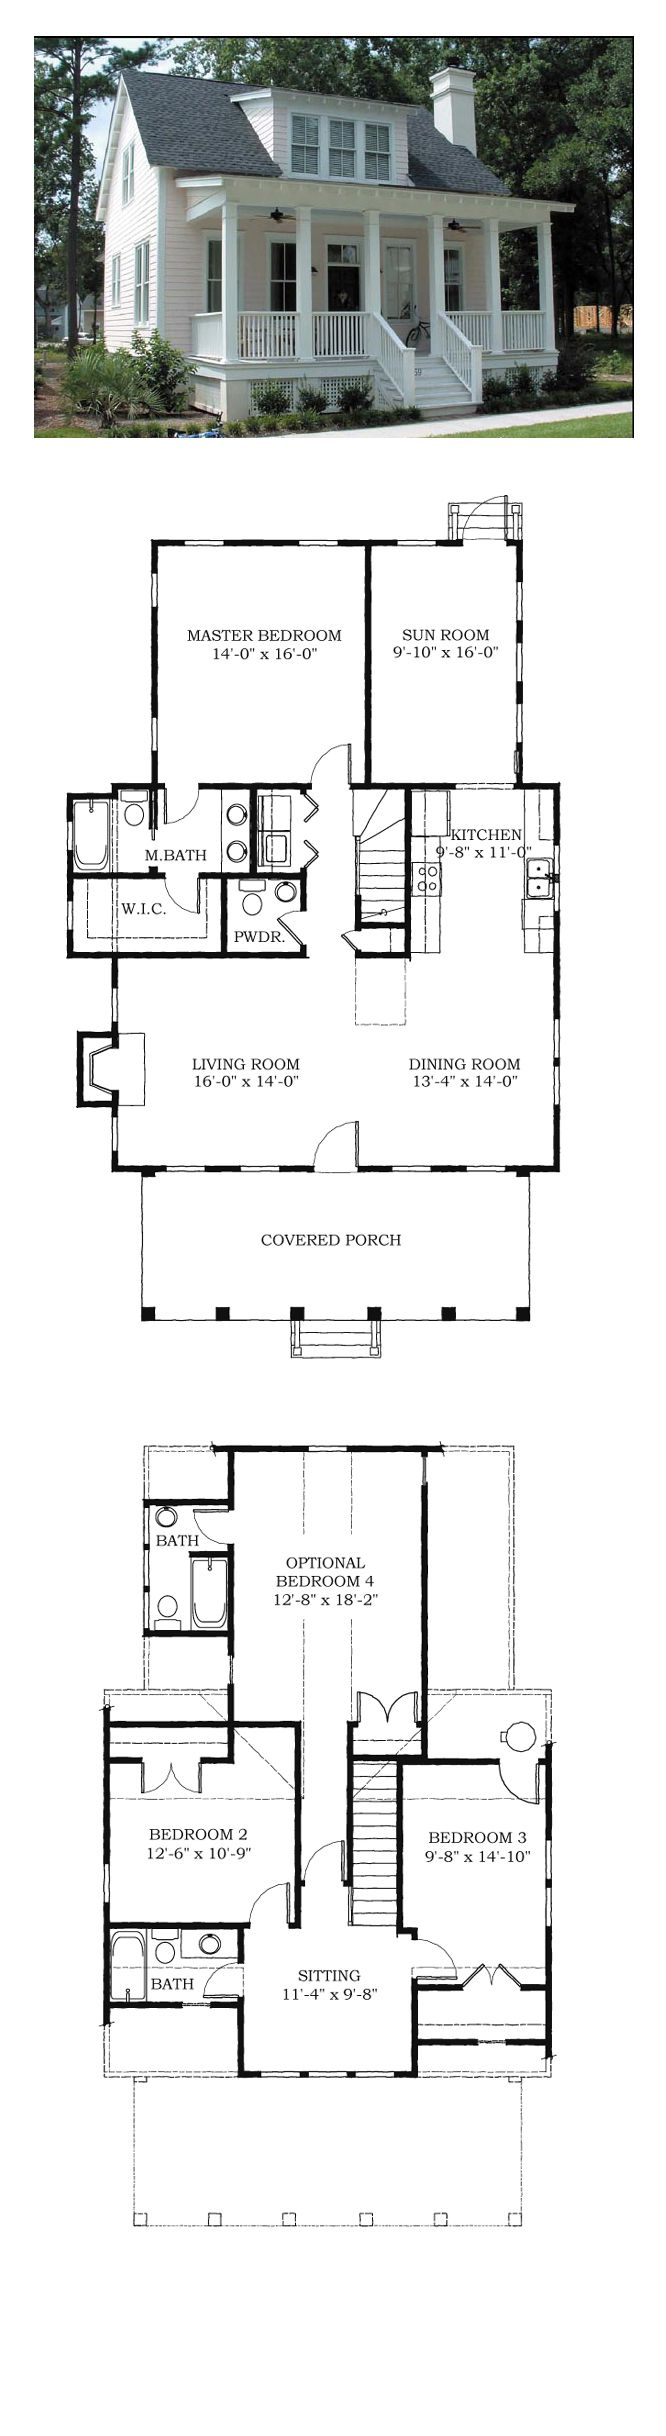 25 best ideas about small house plans on pinterest for Cool house designs